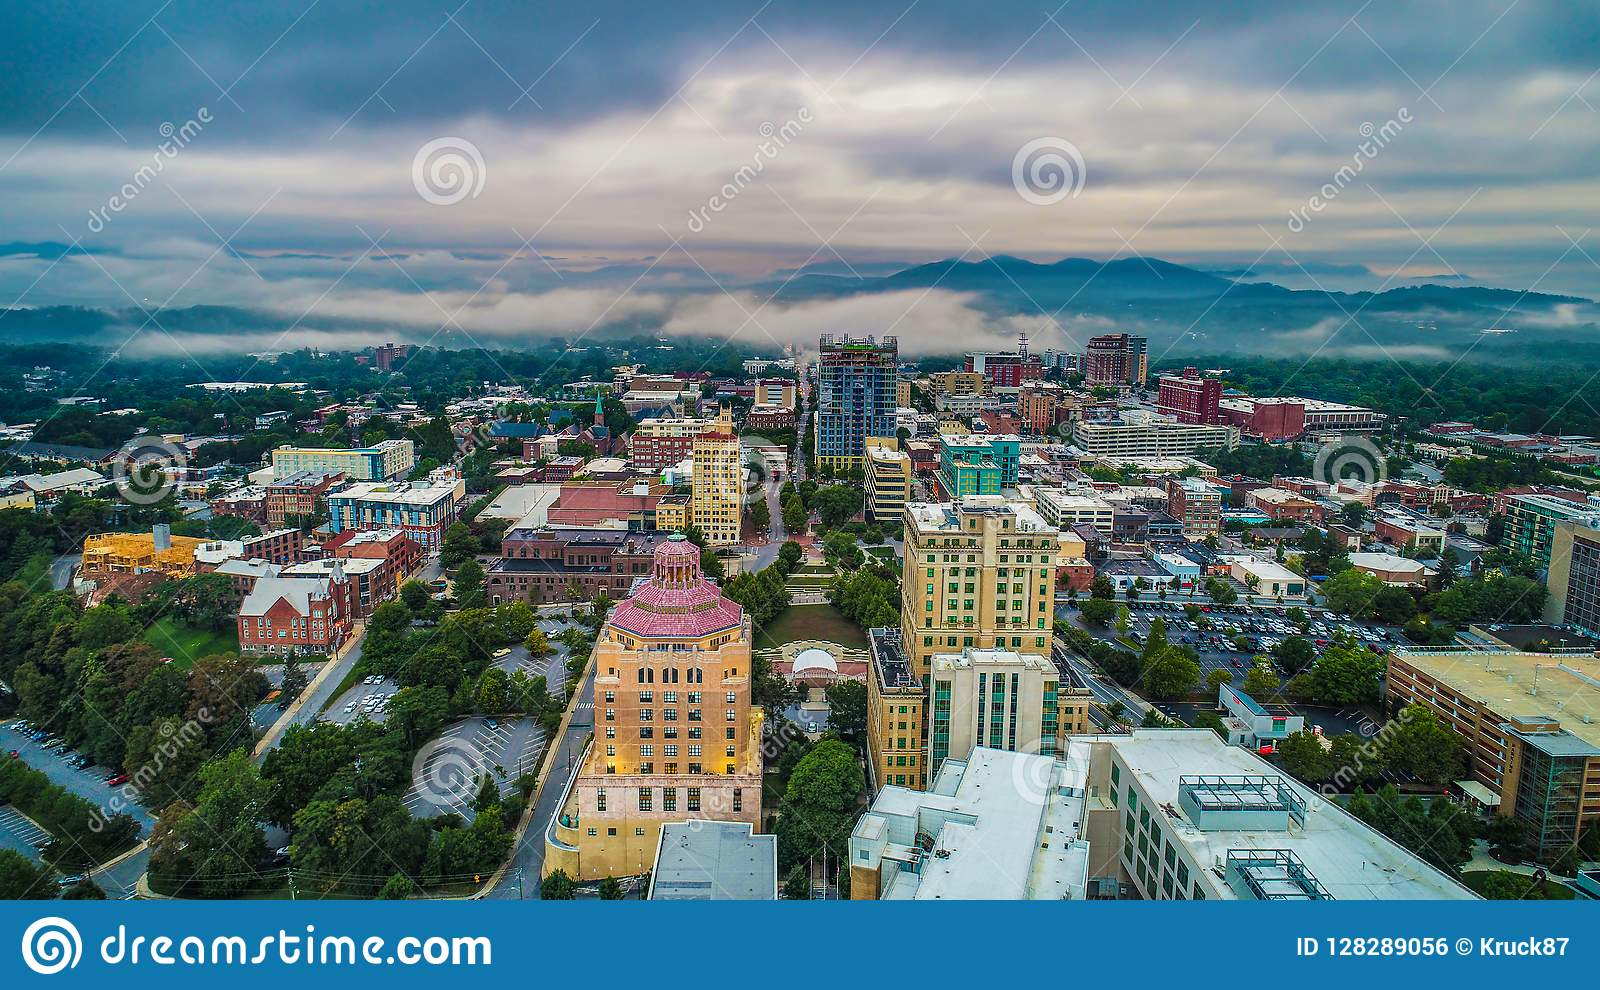 Drone Aerial of Downtown Asheville North Carolina Skyline